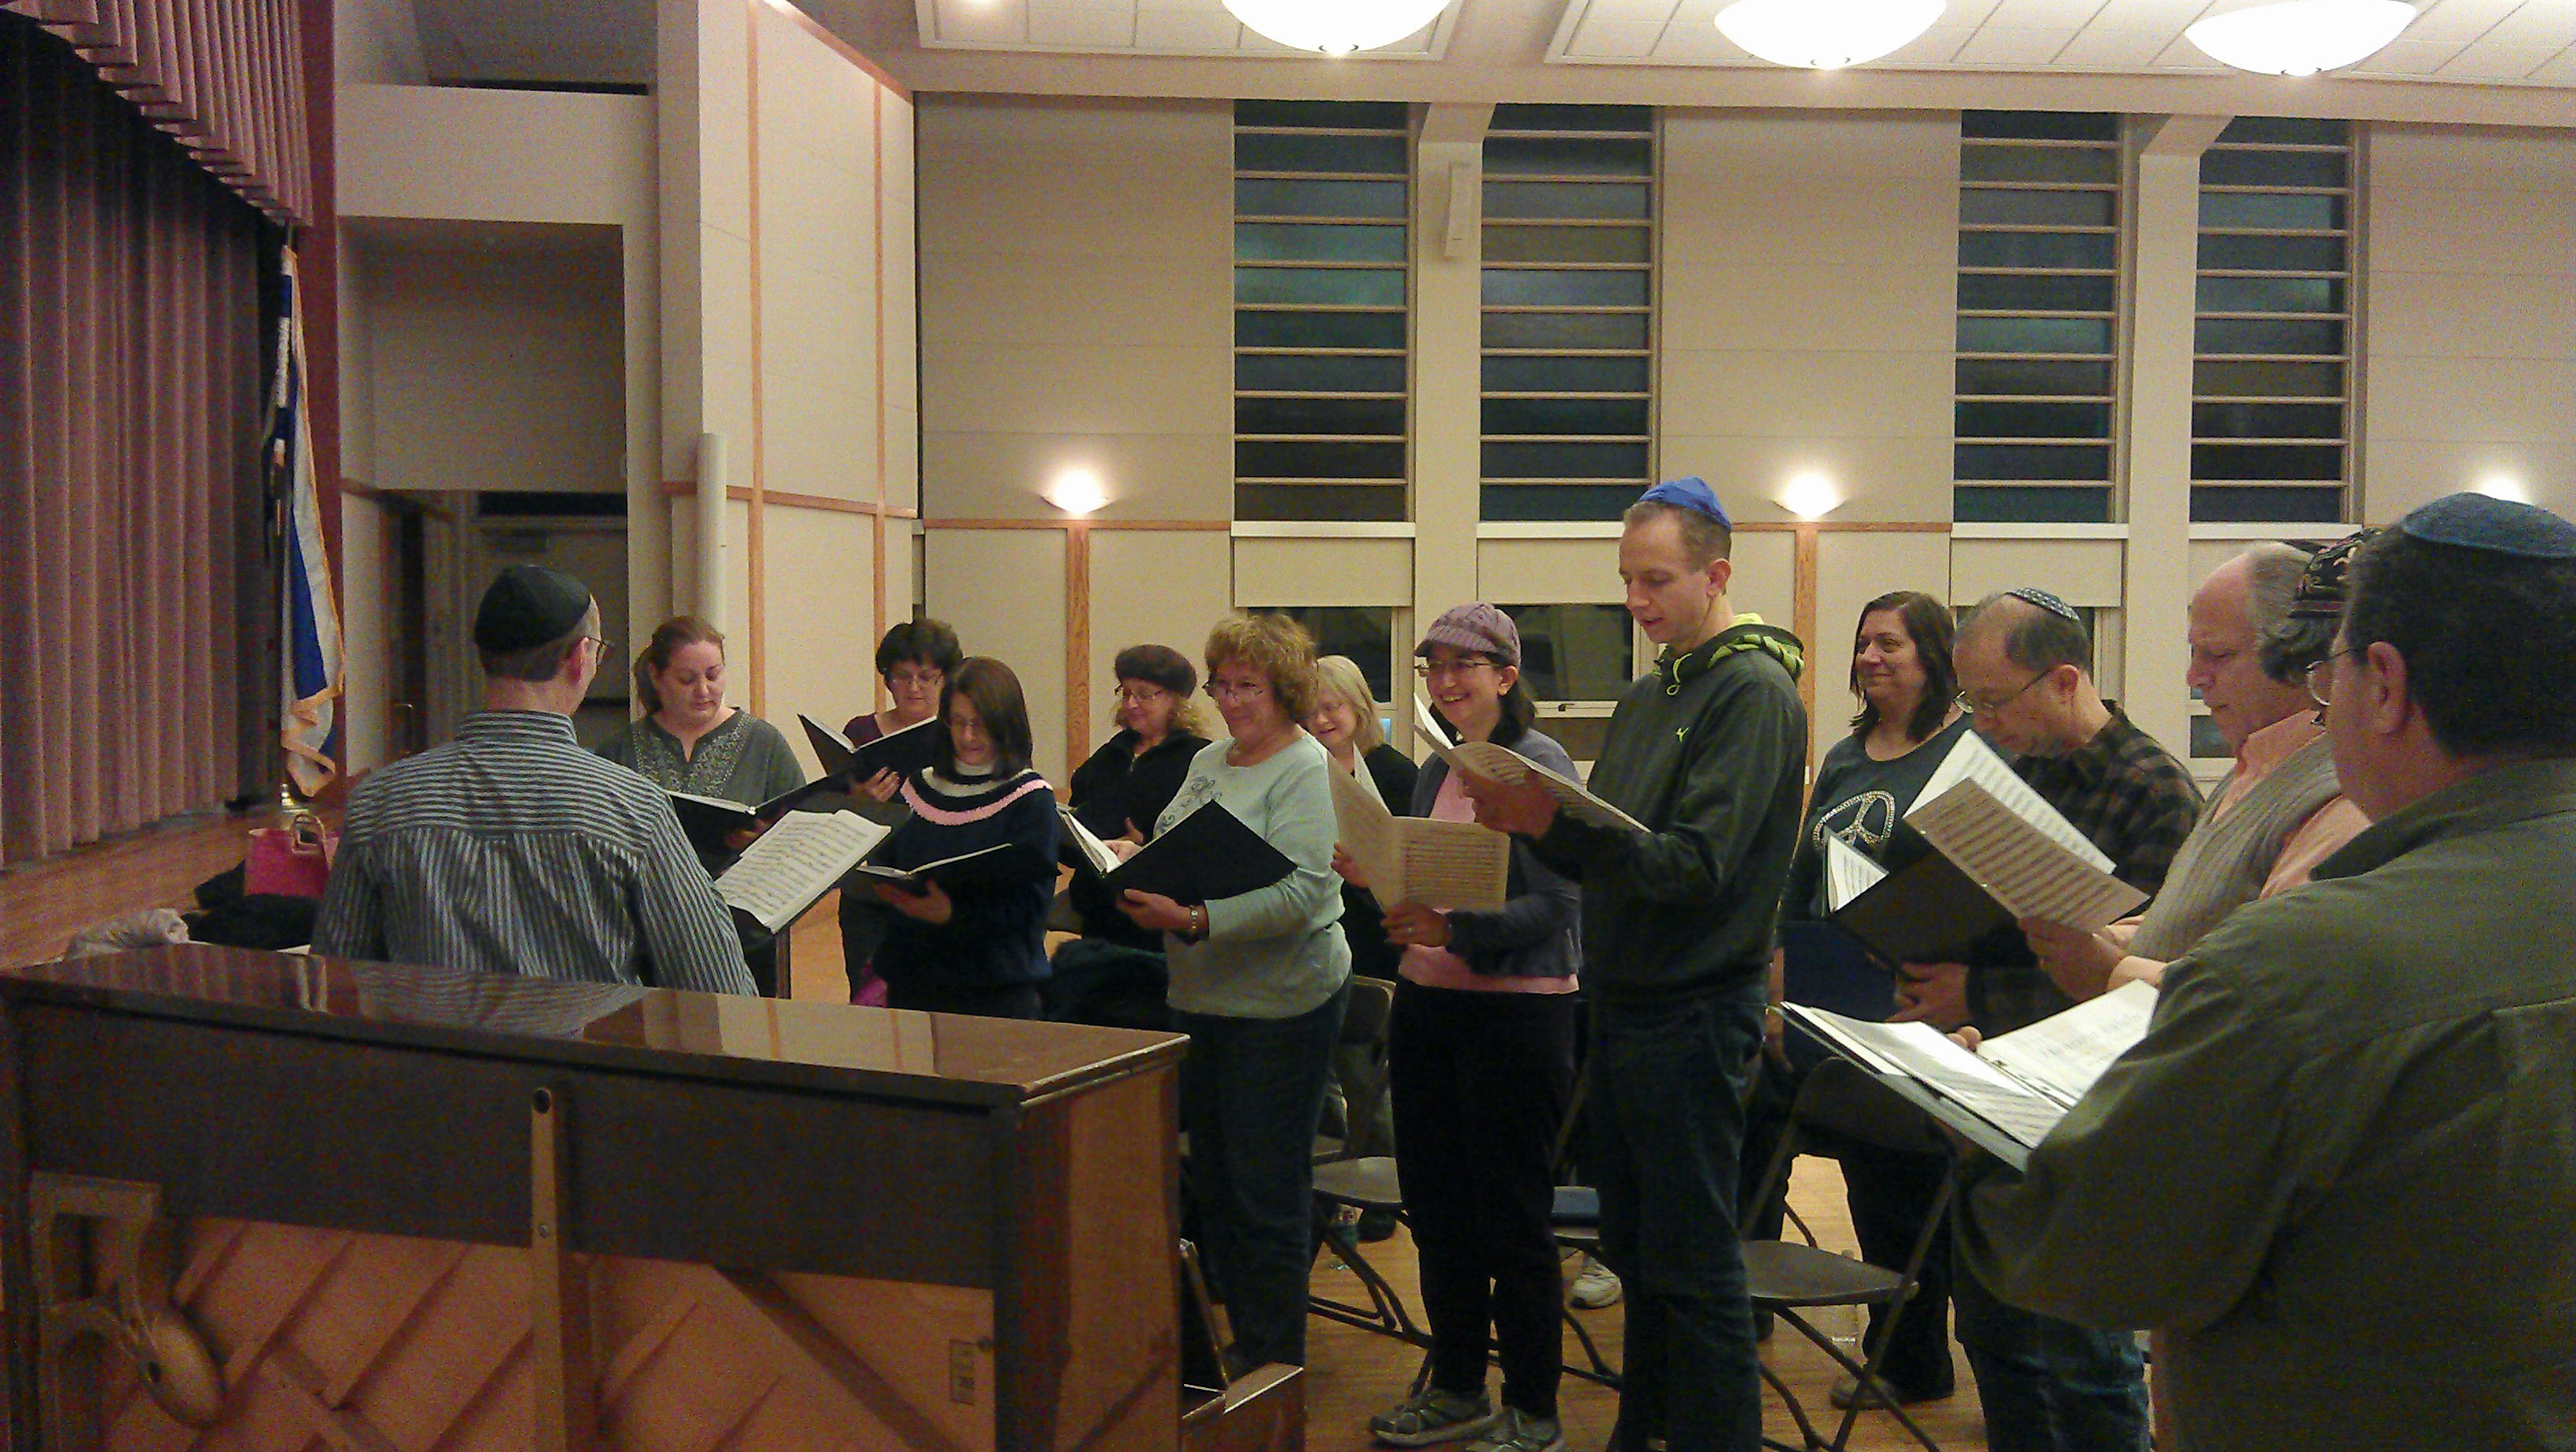 Temple Israel of Natick Singers